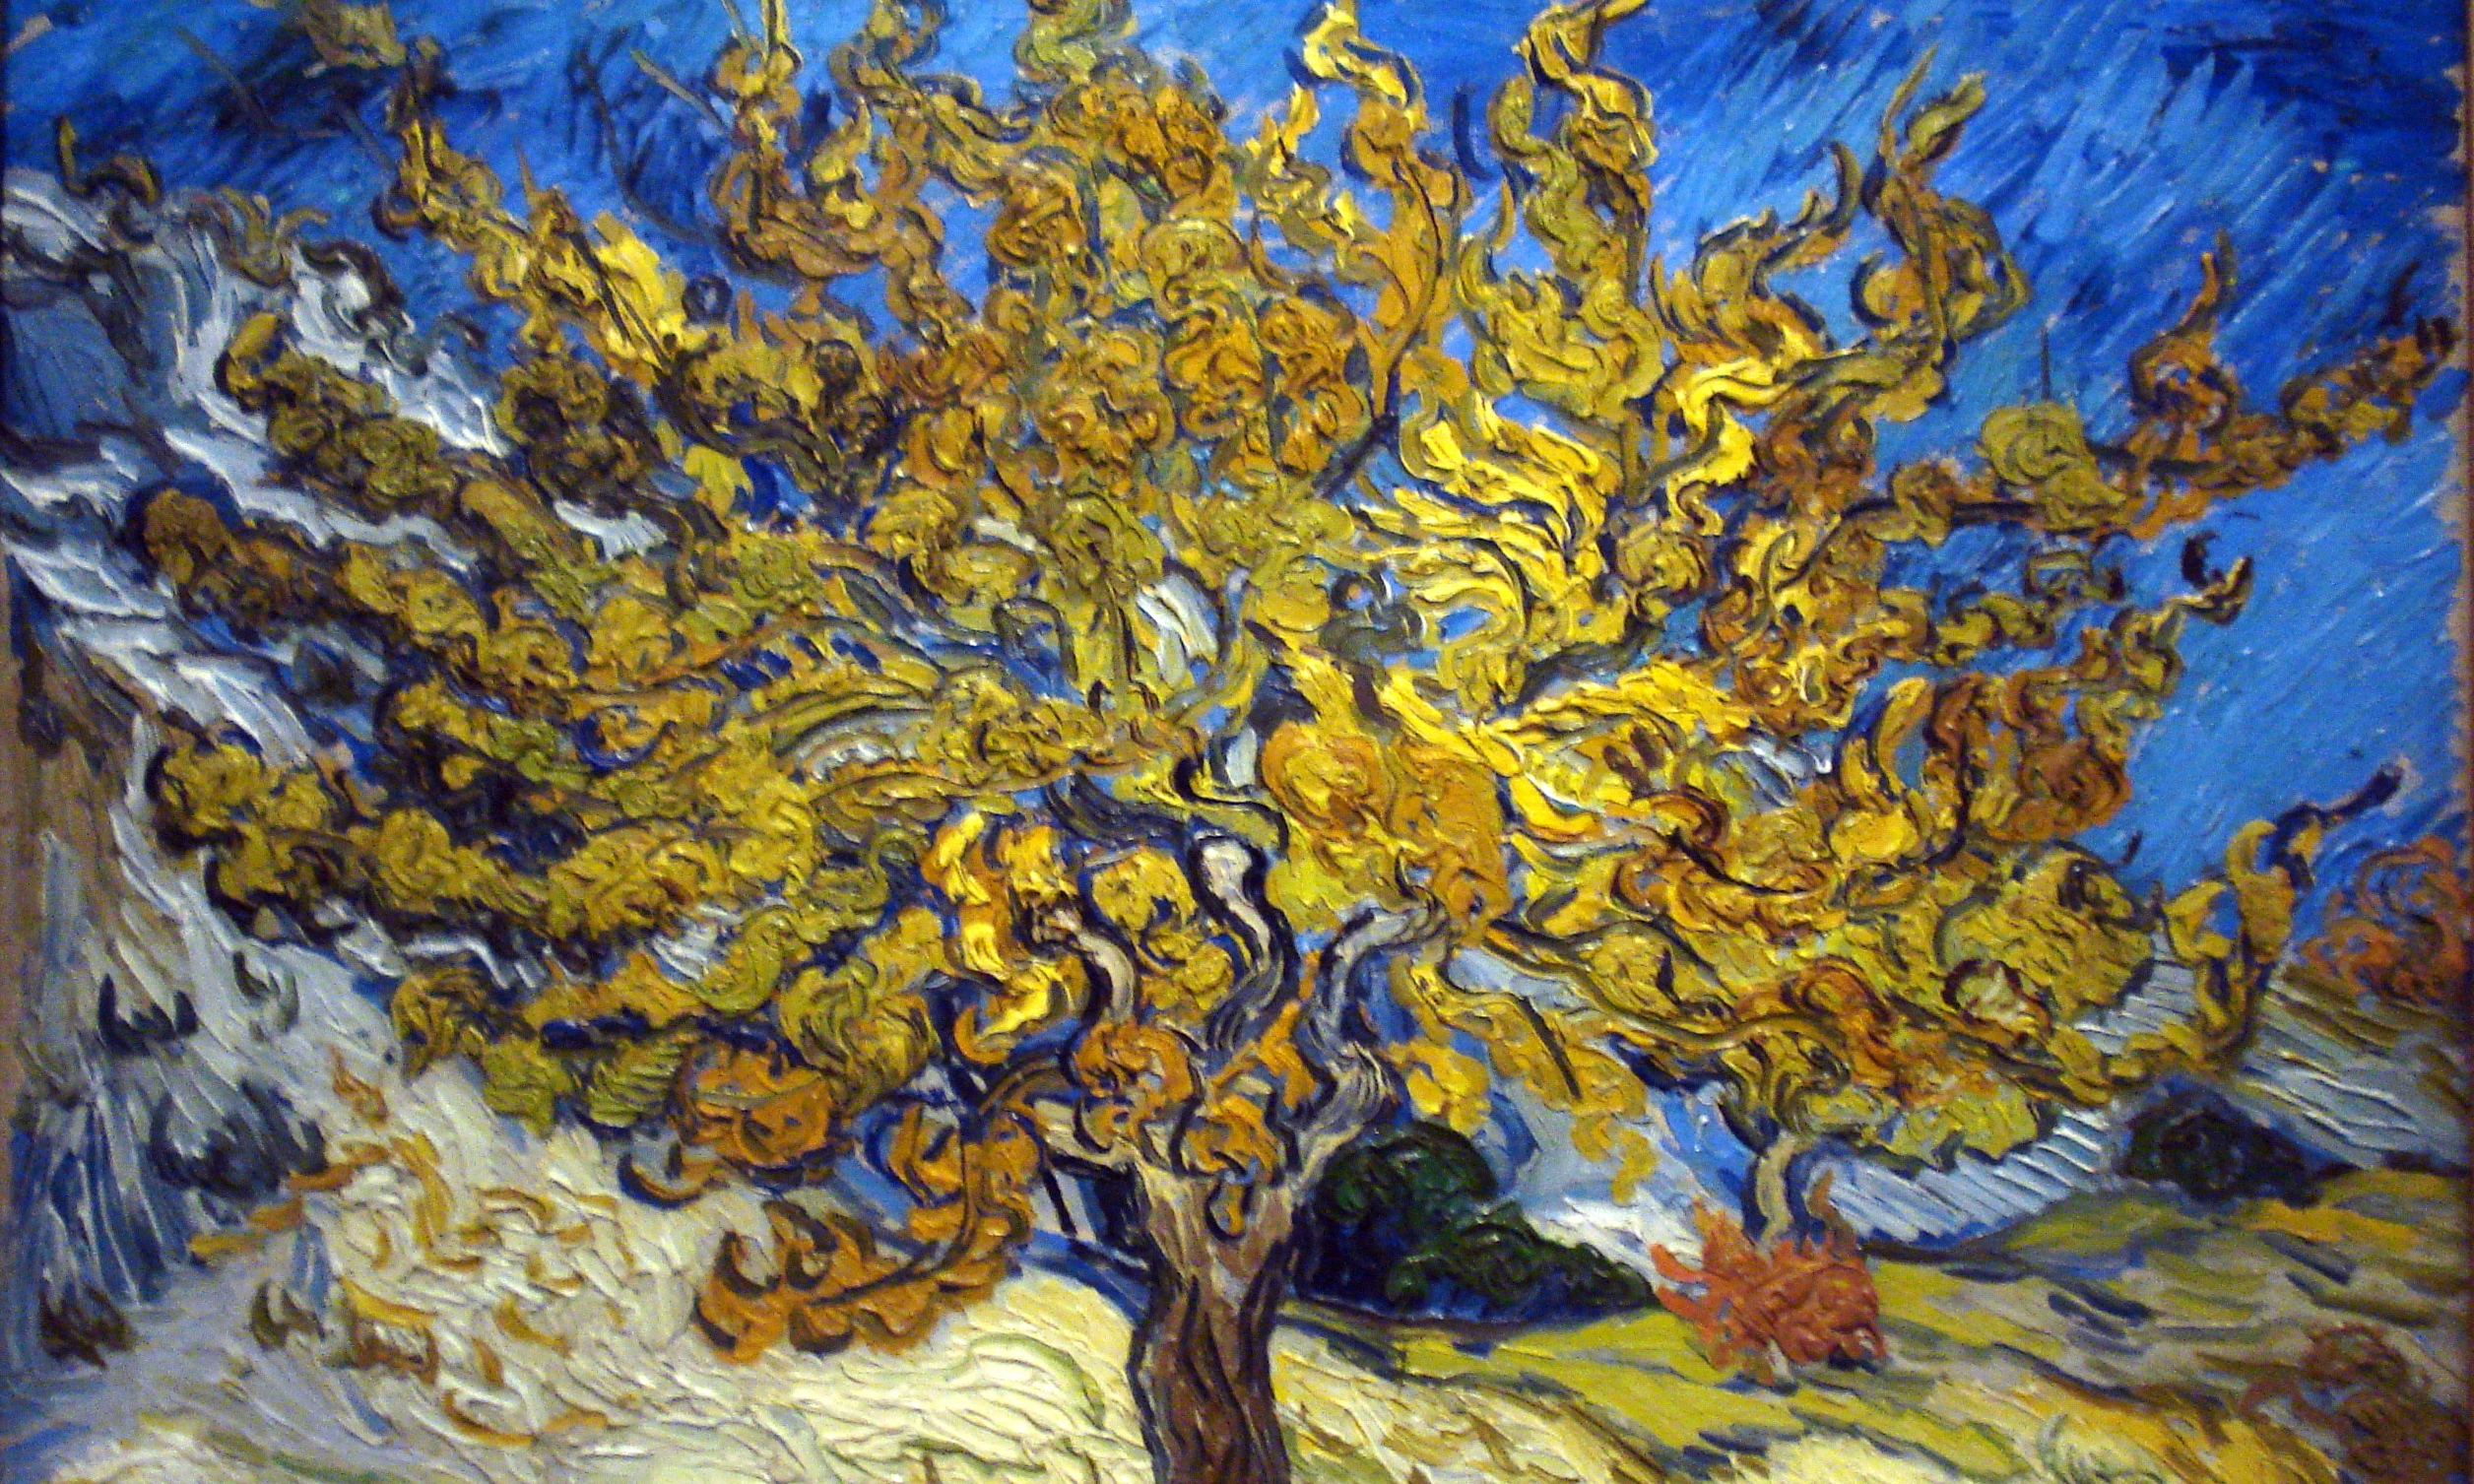 Image: Vincent Van Gogh, Mulberry Tree in Autumn